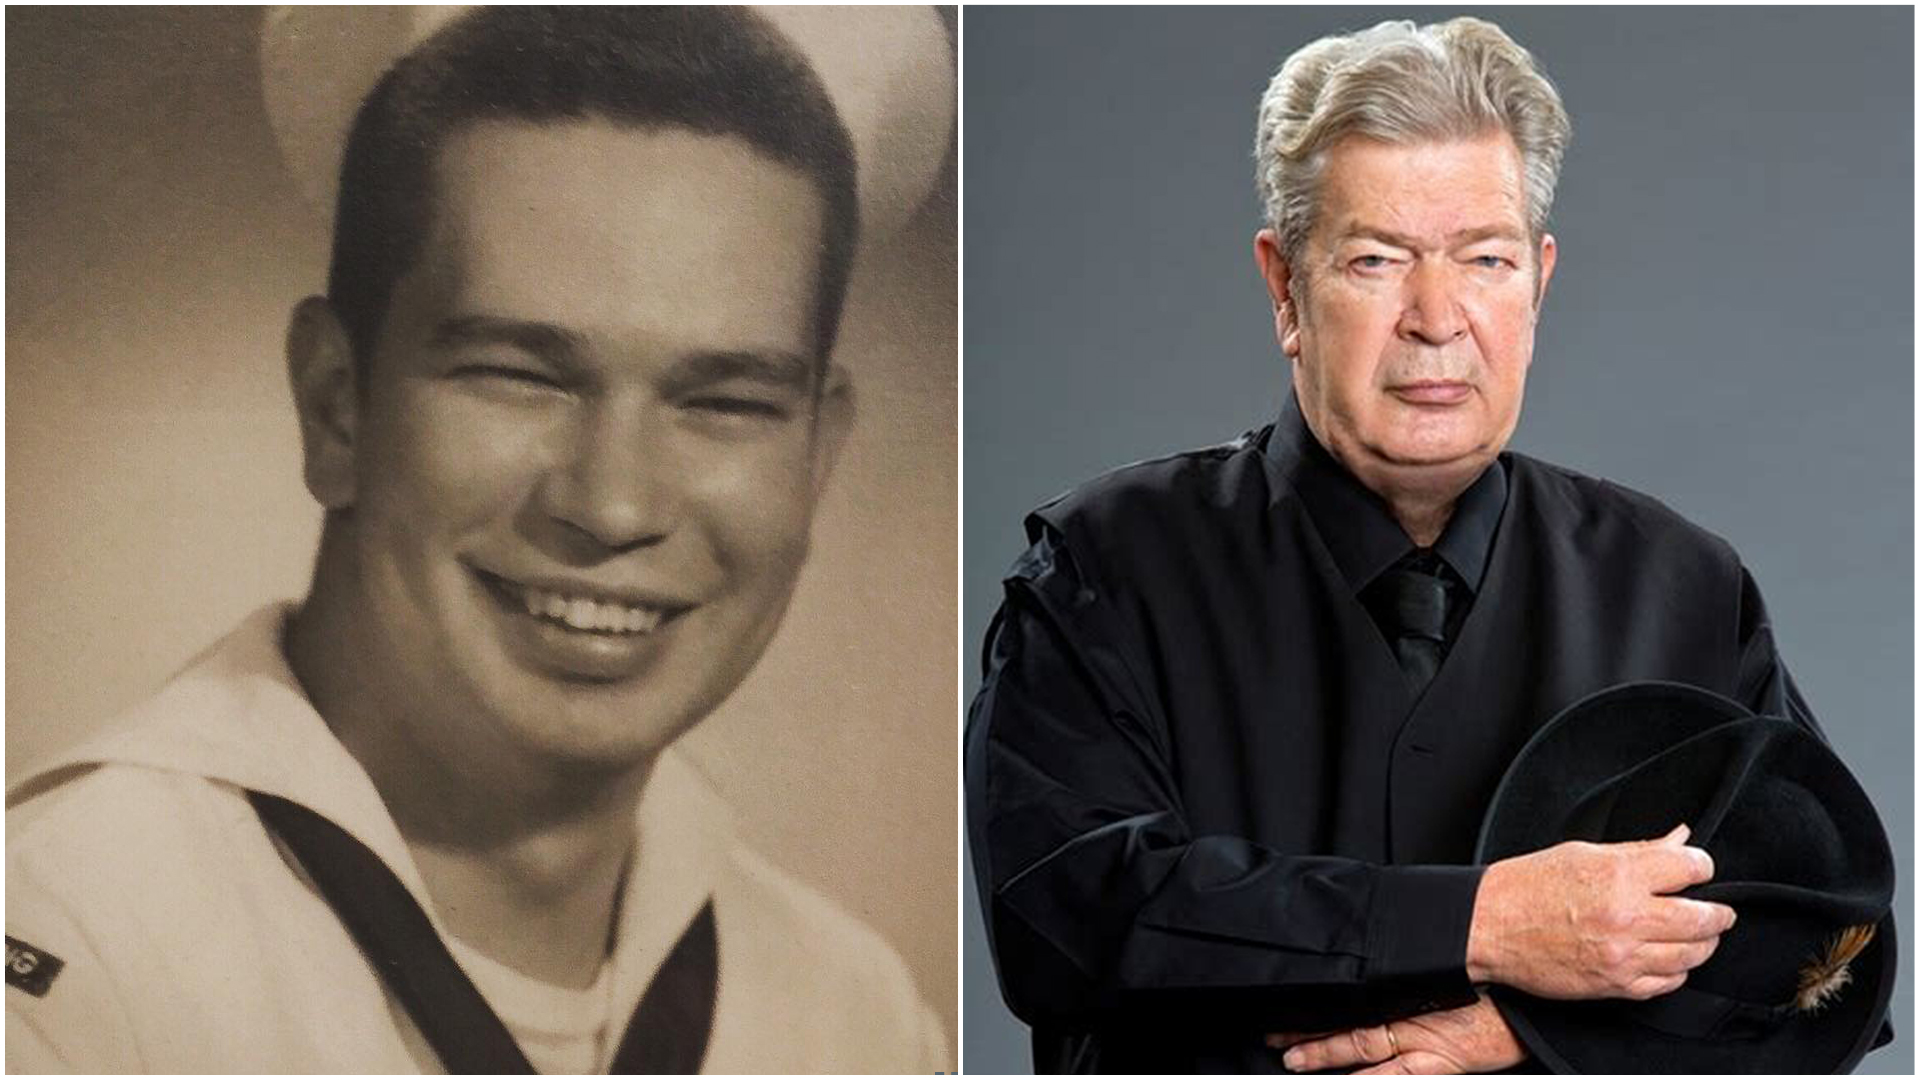 """Richard """"The Old Man"""" Harrison's young age picture (left) and old age picture (right)"""